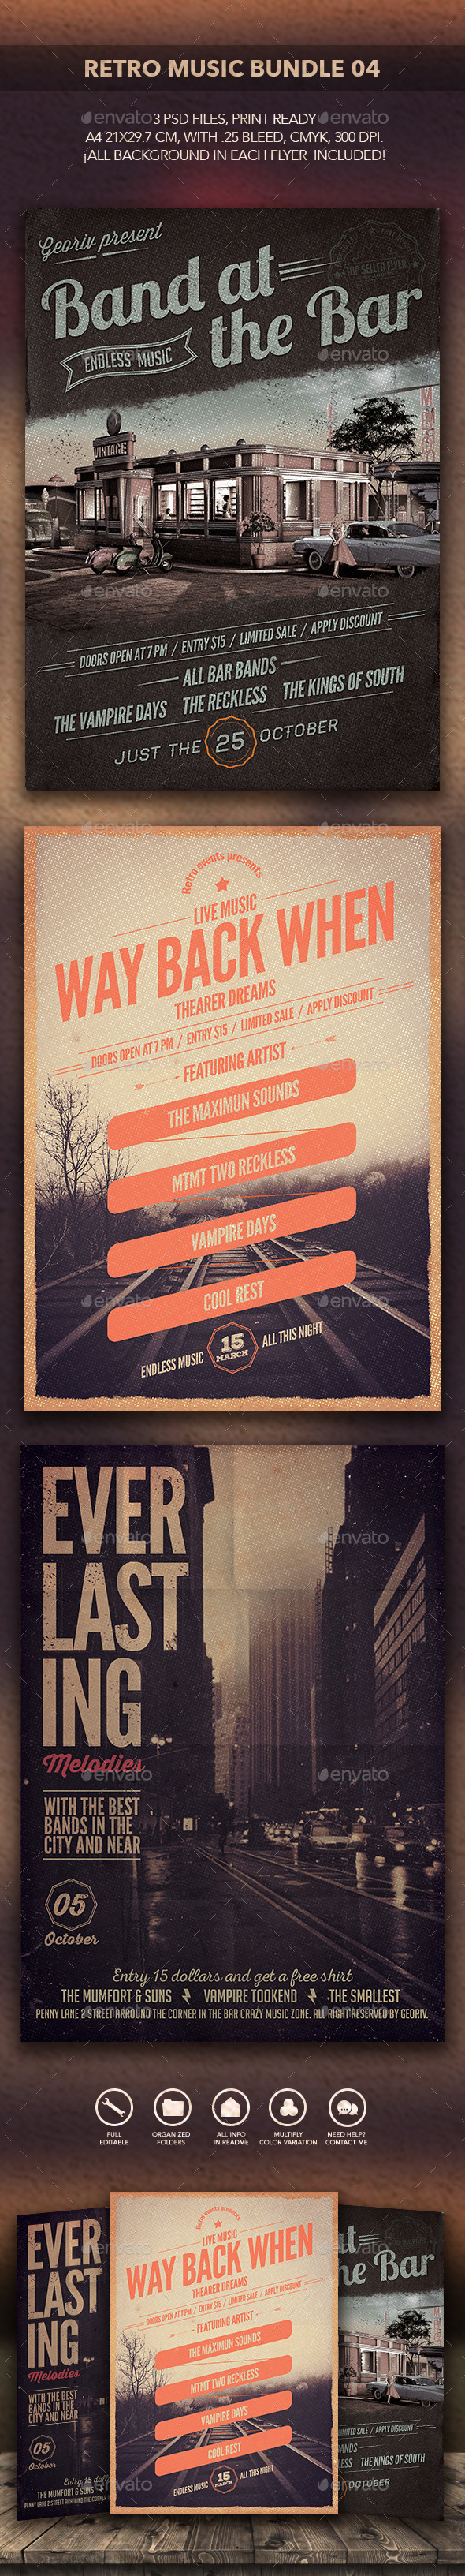 Retro Music Bundle 04 - Events Flyers